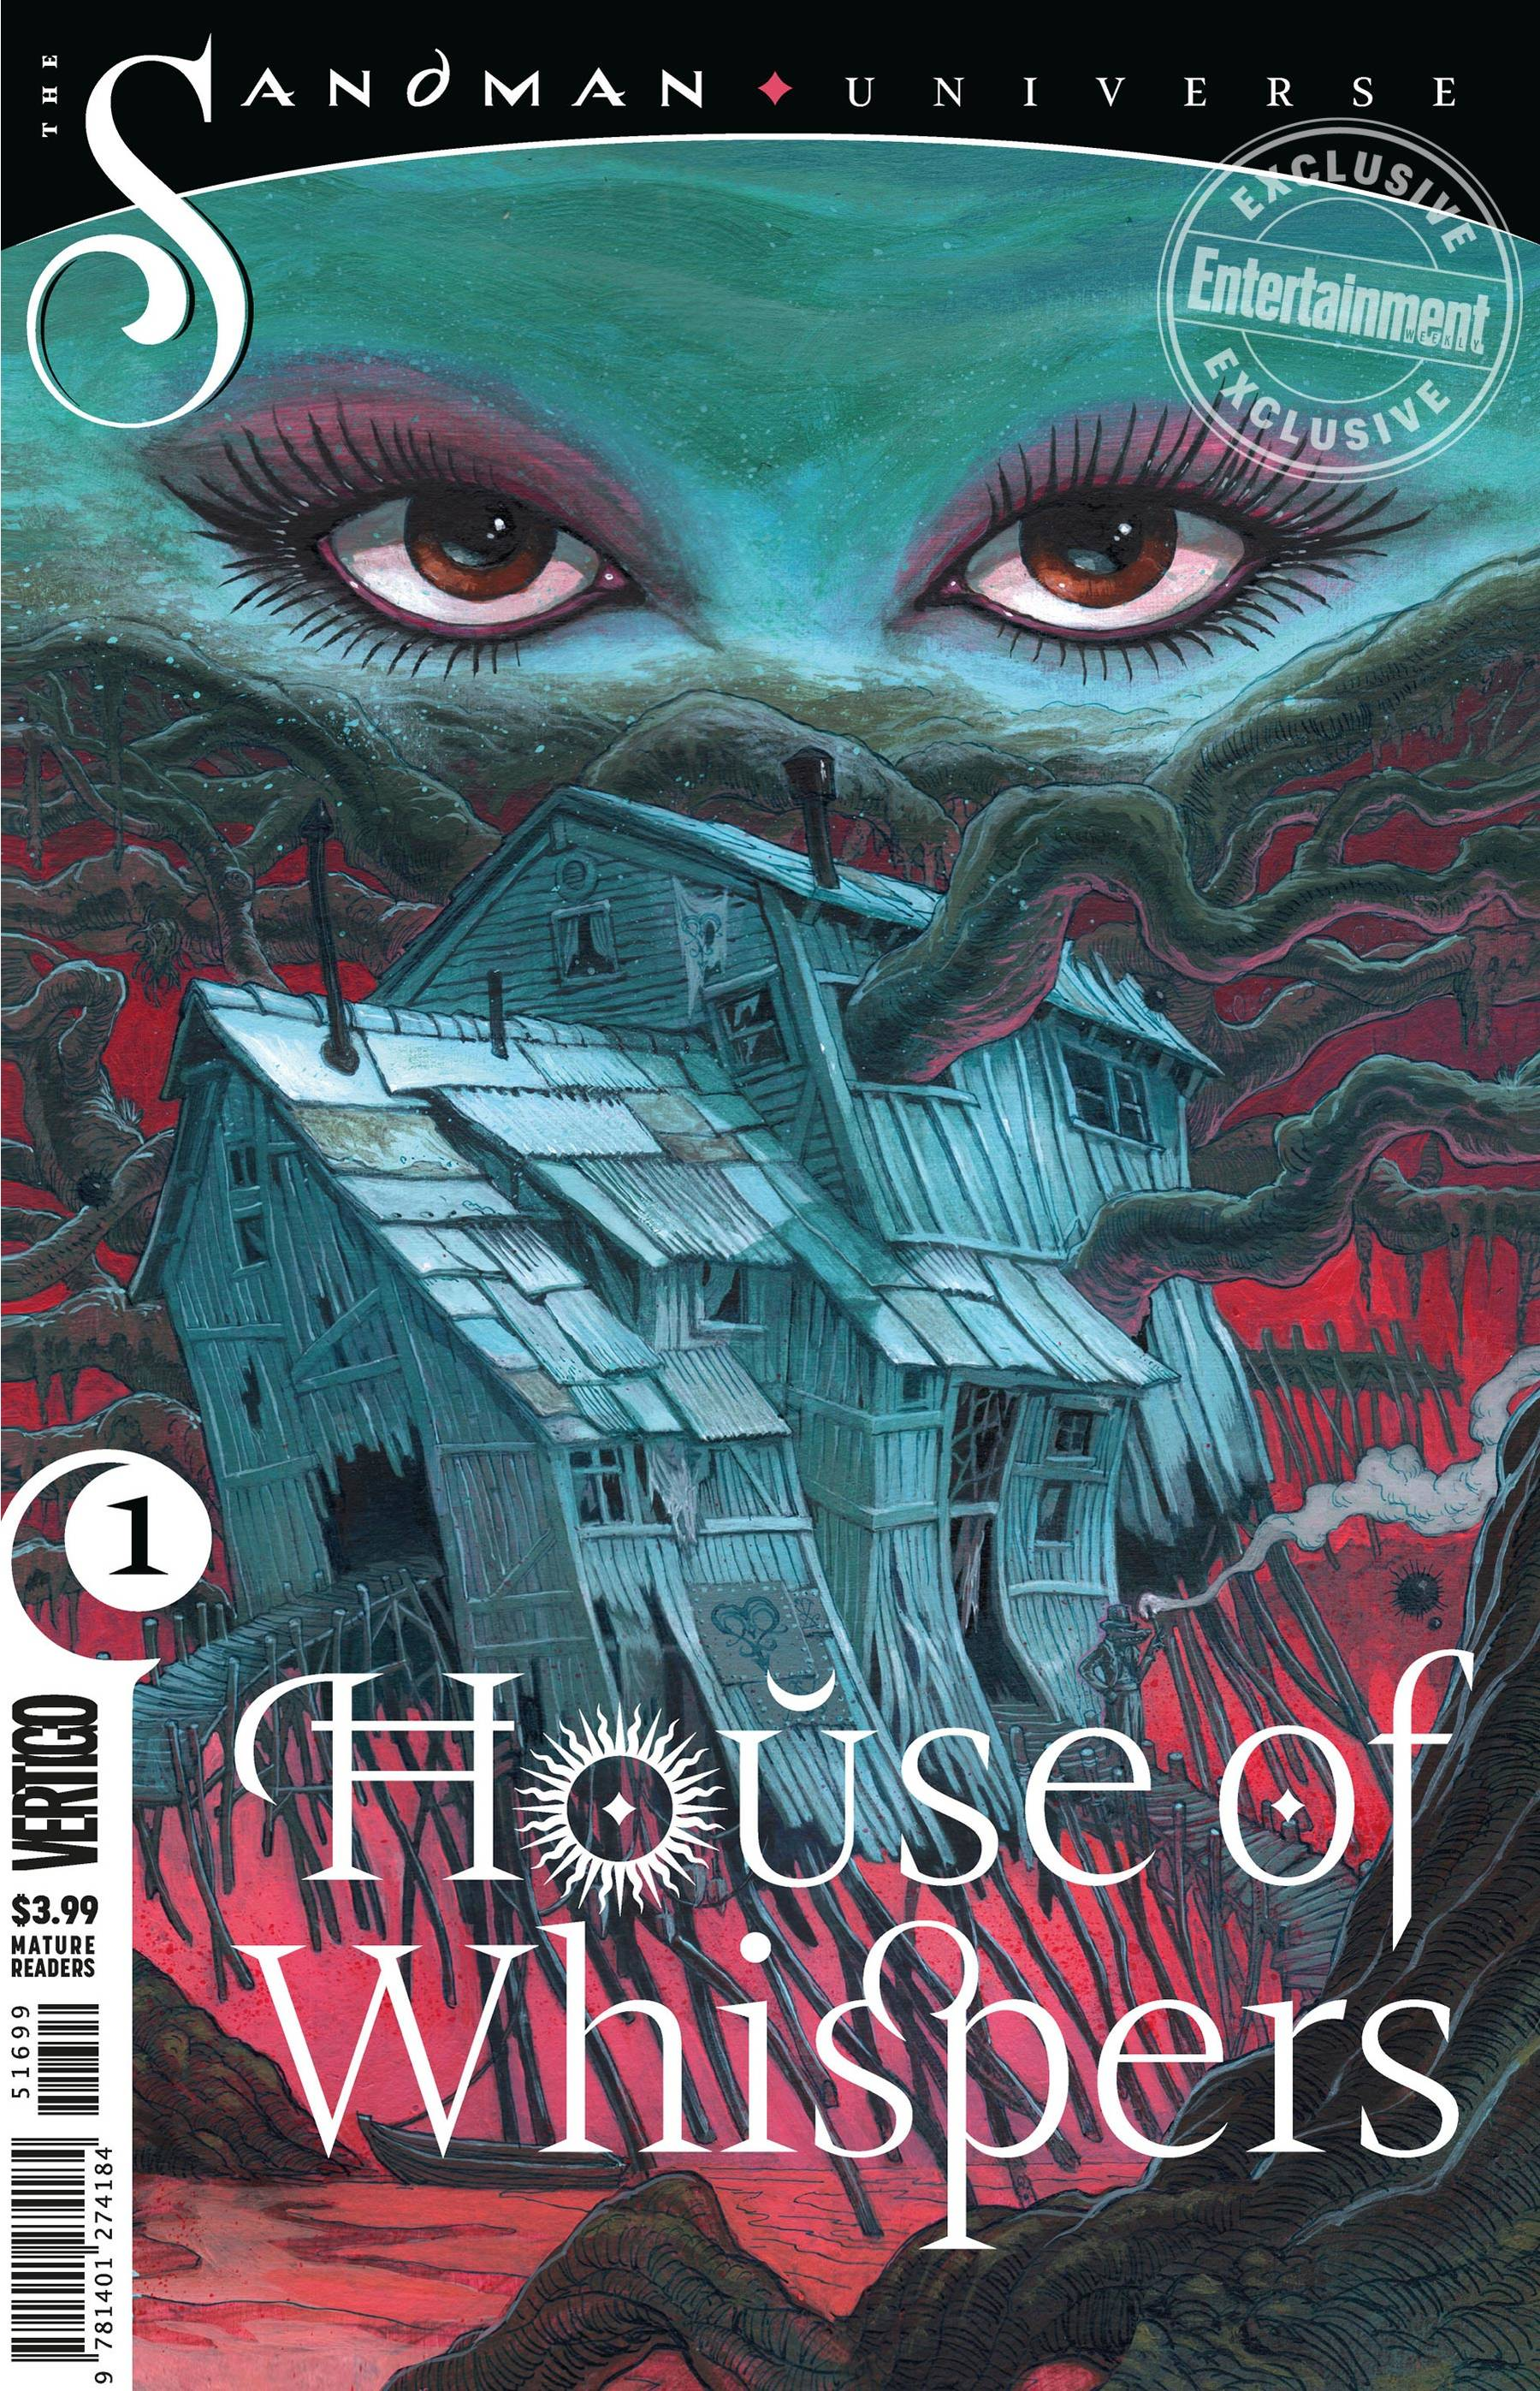 Sandman Universe House of Whispers #1